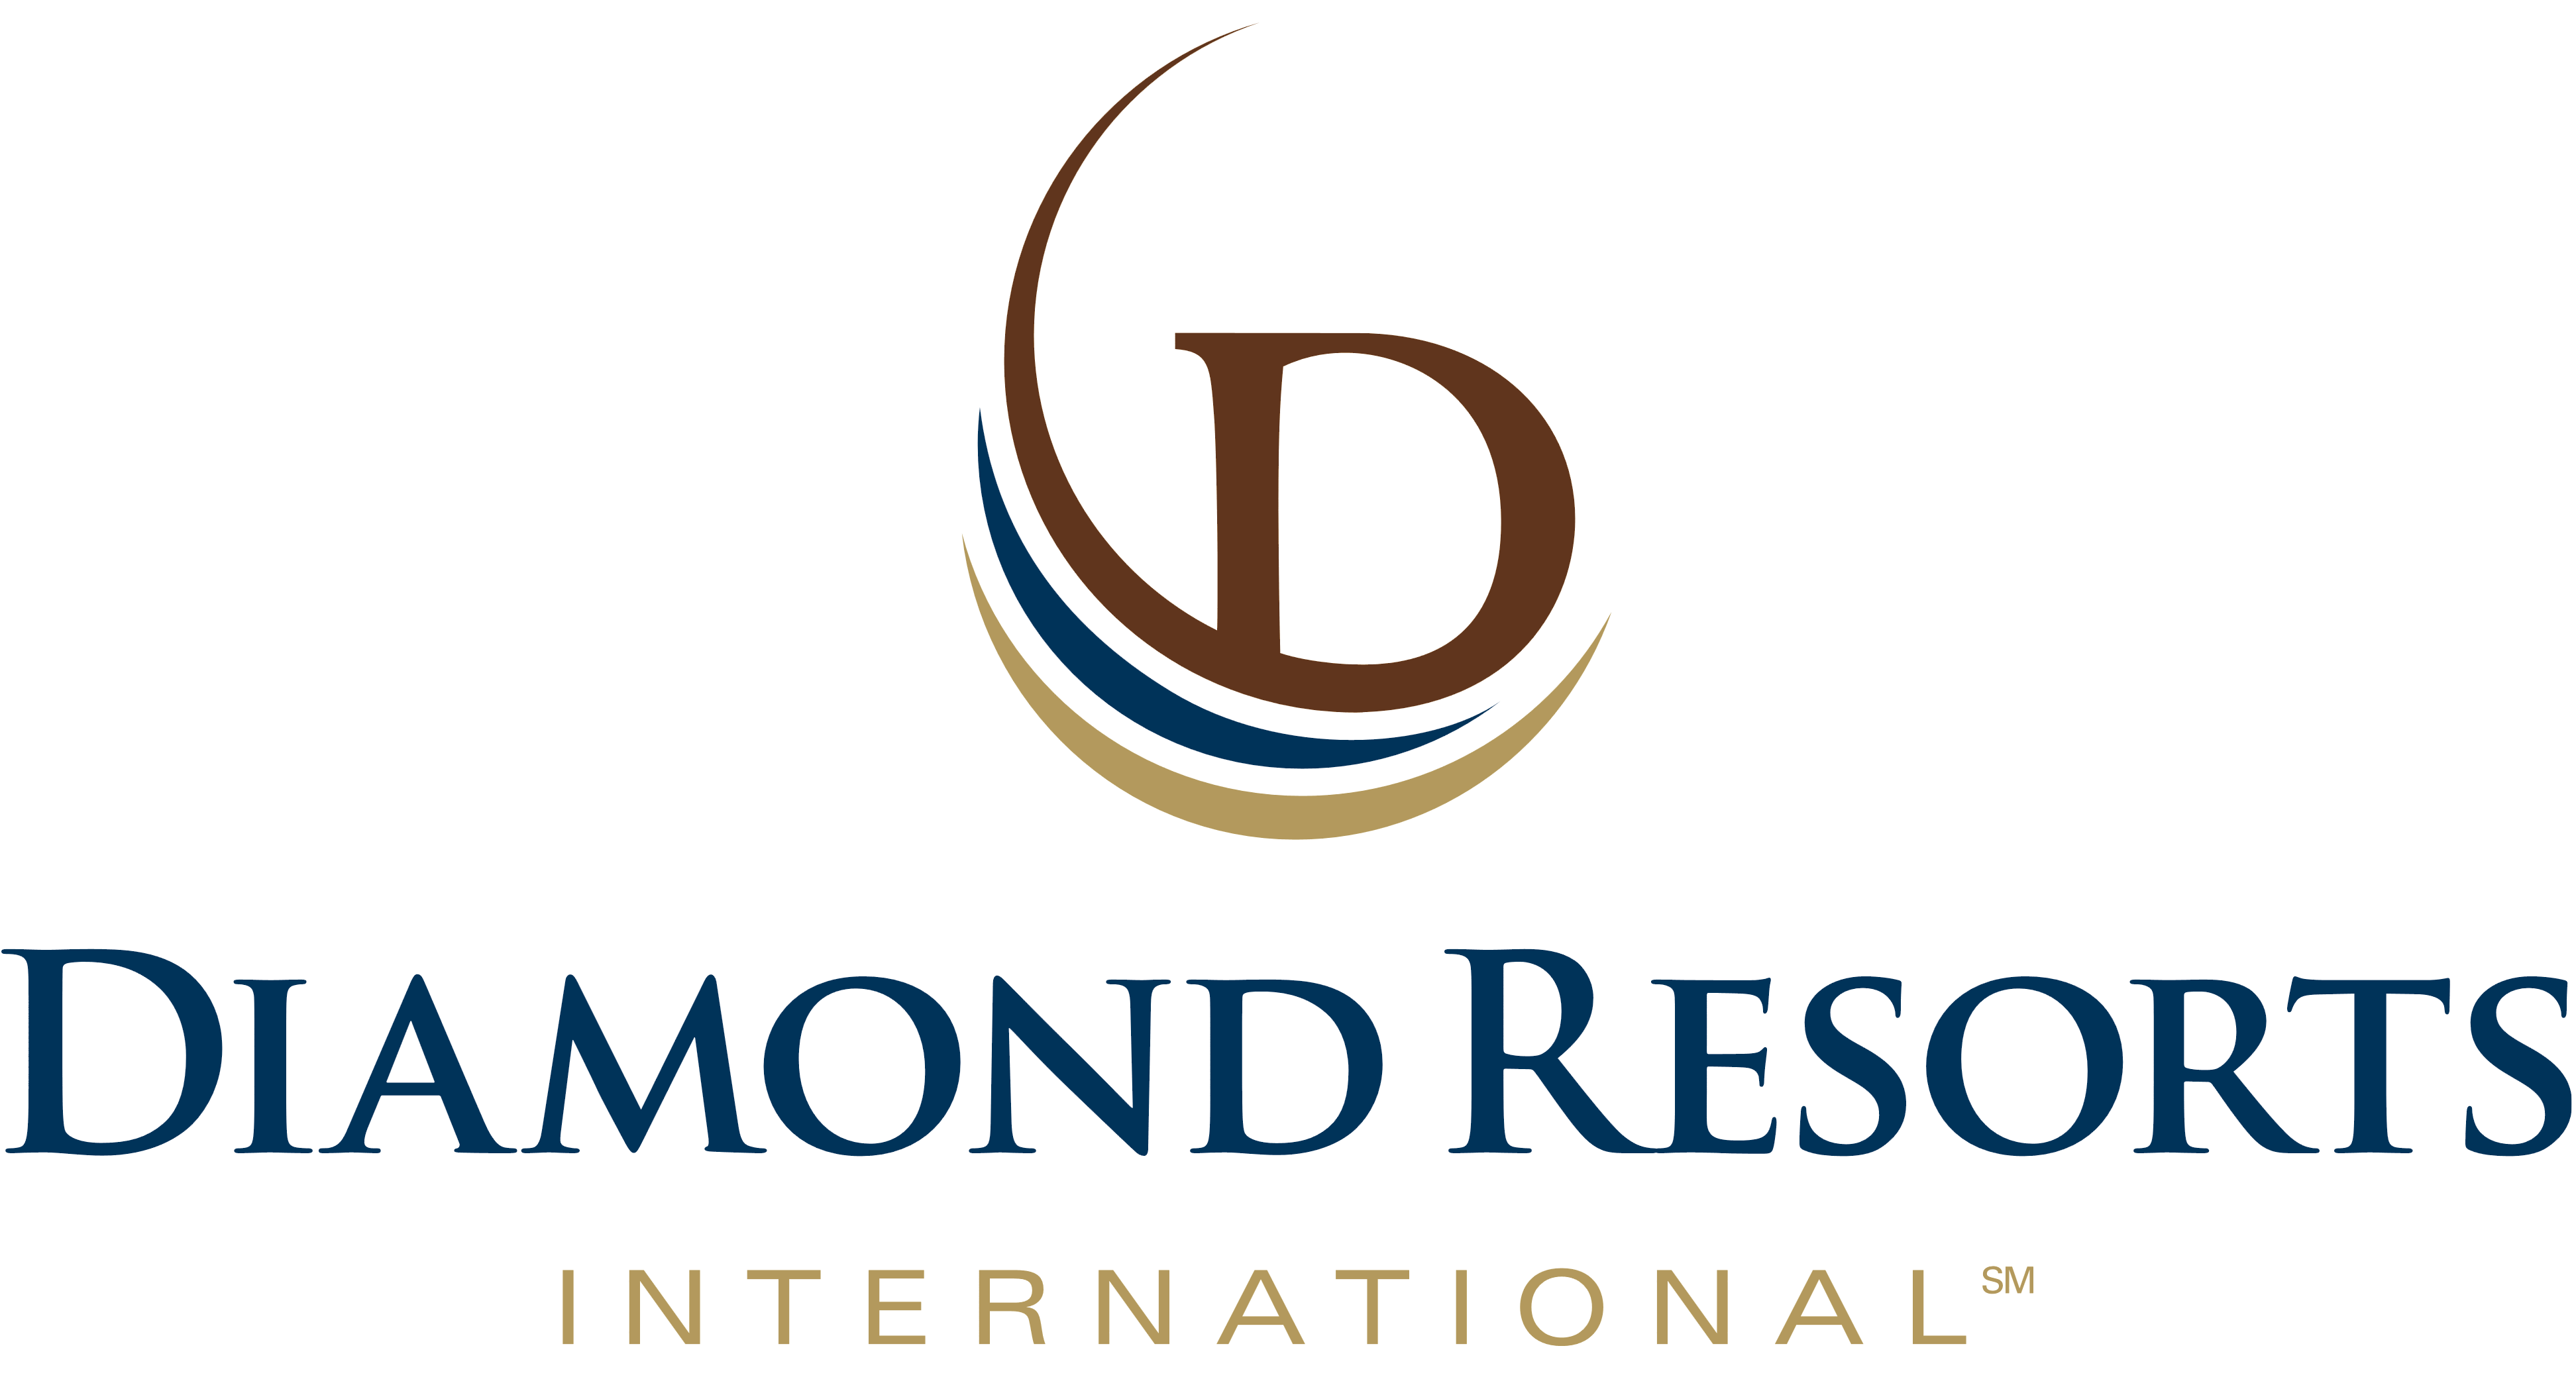 Diamond resorts international